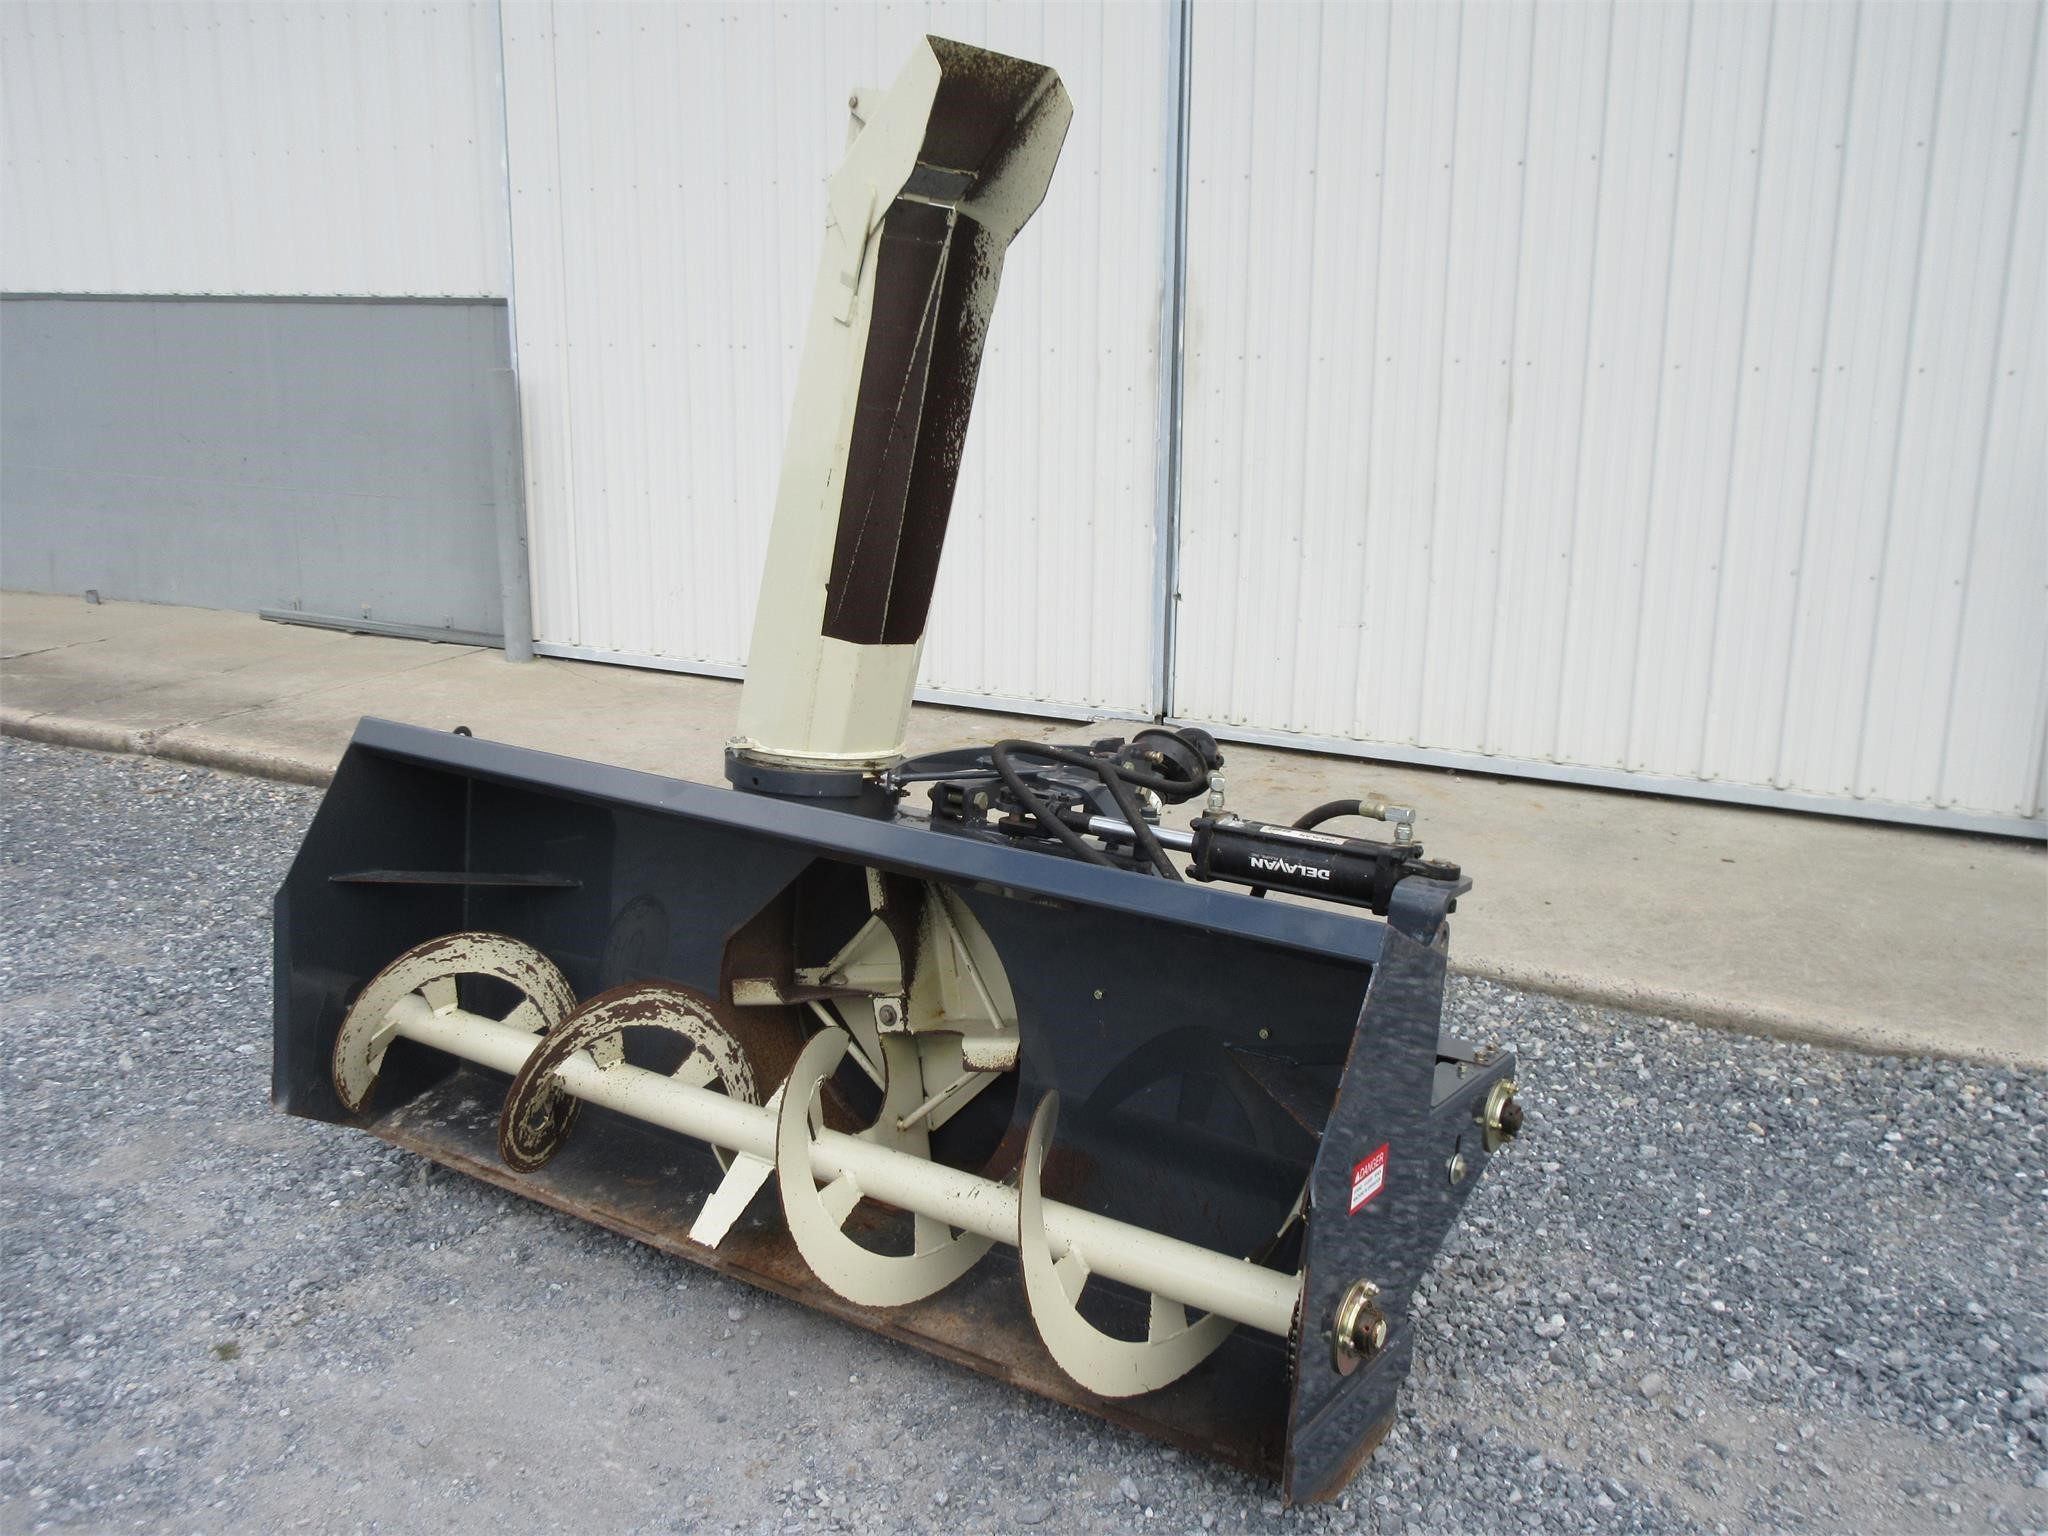 2010 ALLIED FARM KING 7420 Snow Blower